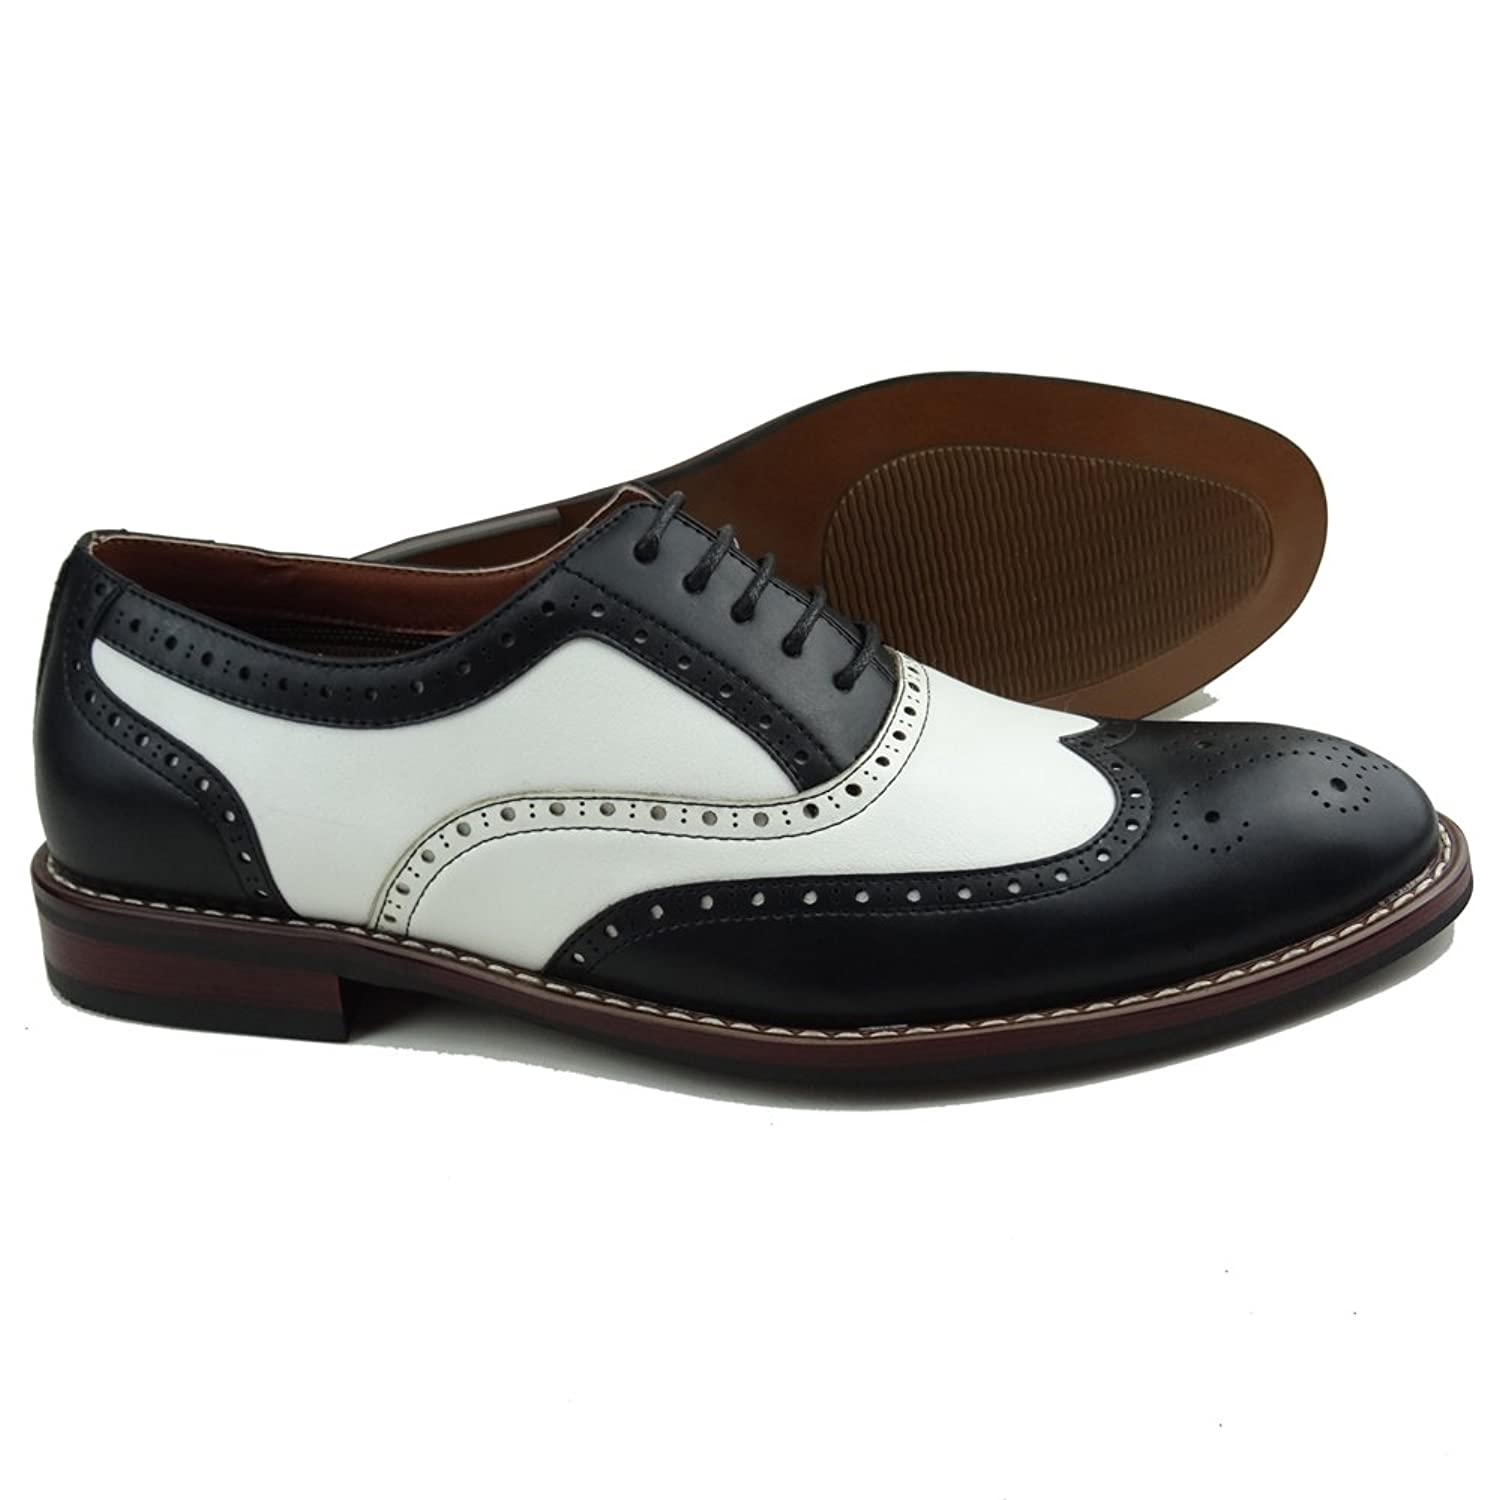 Rockabilly Men's Clothing  Mens Black White Lace Up Wing Tip Perforated Oxford Dress Shoes $34.99 AT vintagedancer.com